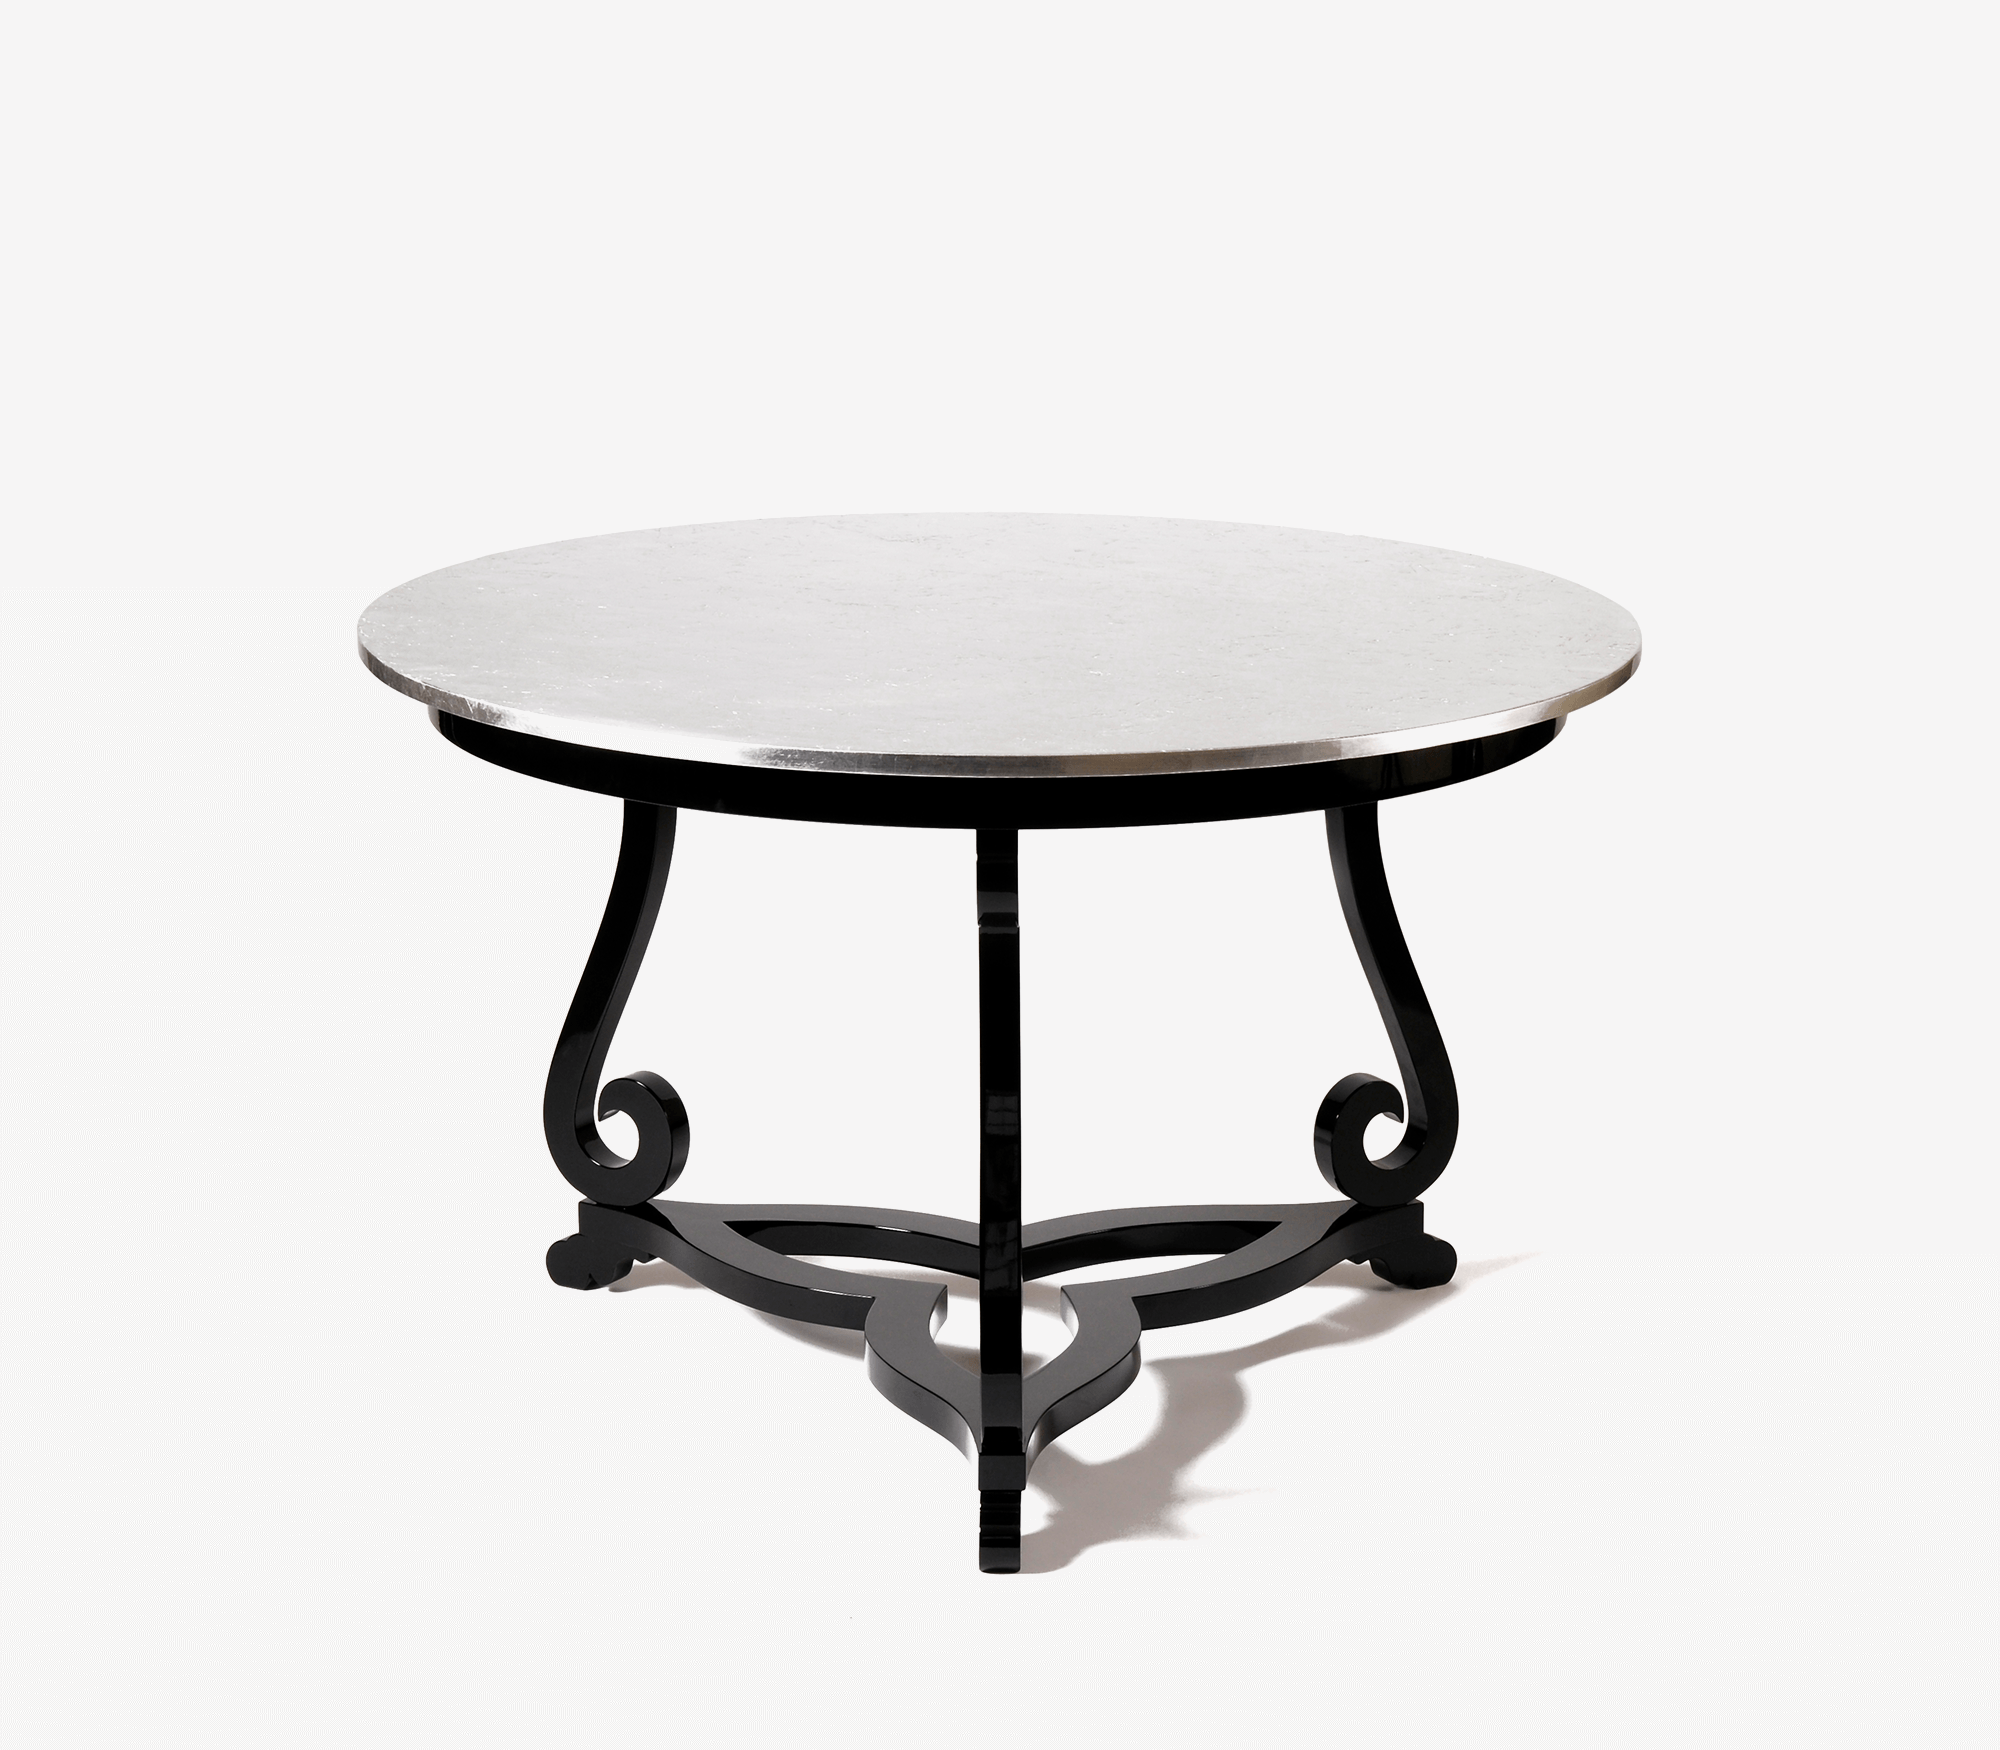 Flourish Silver Pedestal Table by Boca do Lobo